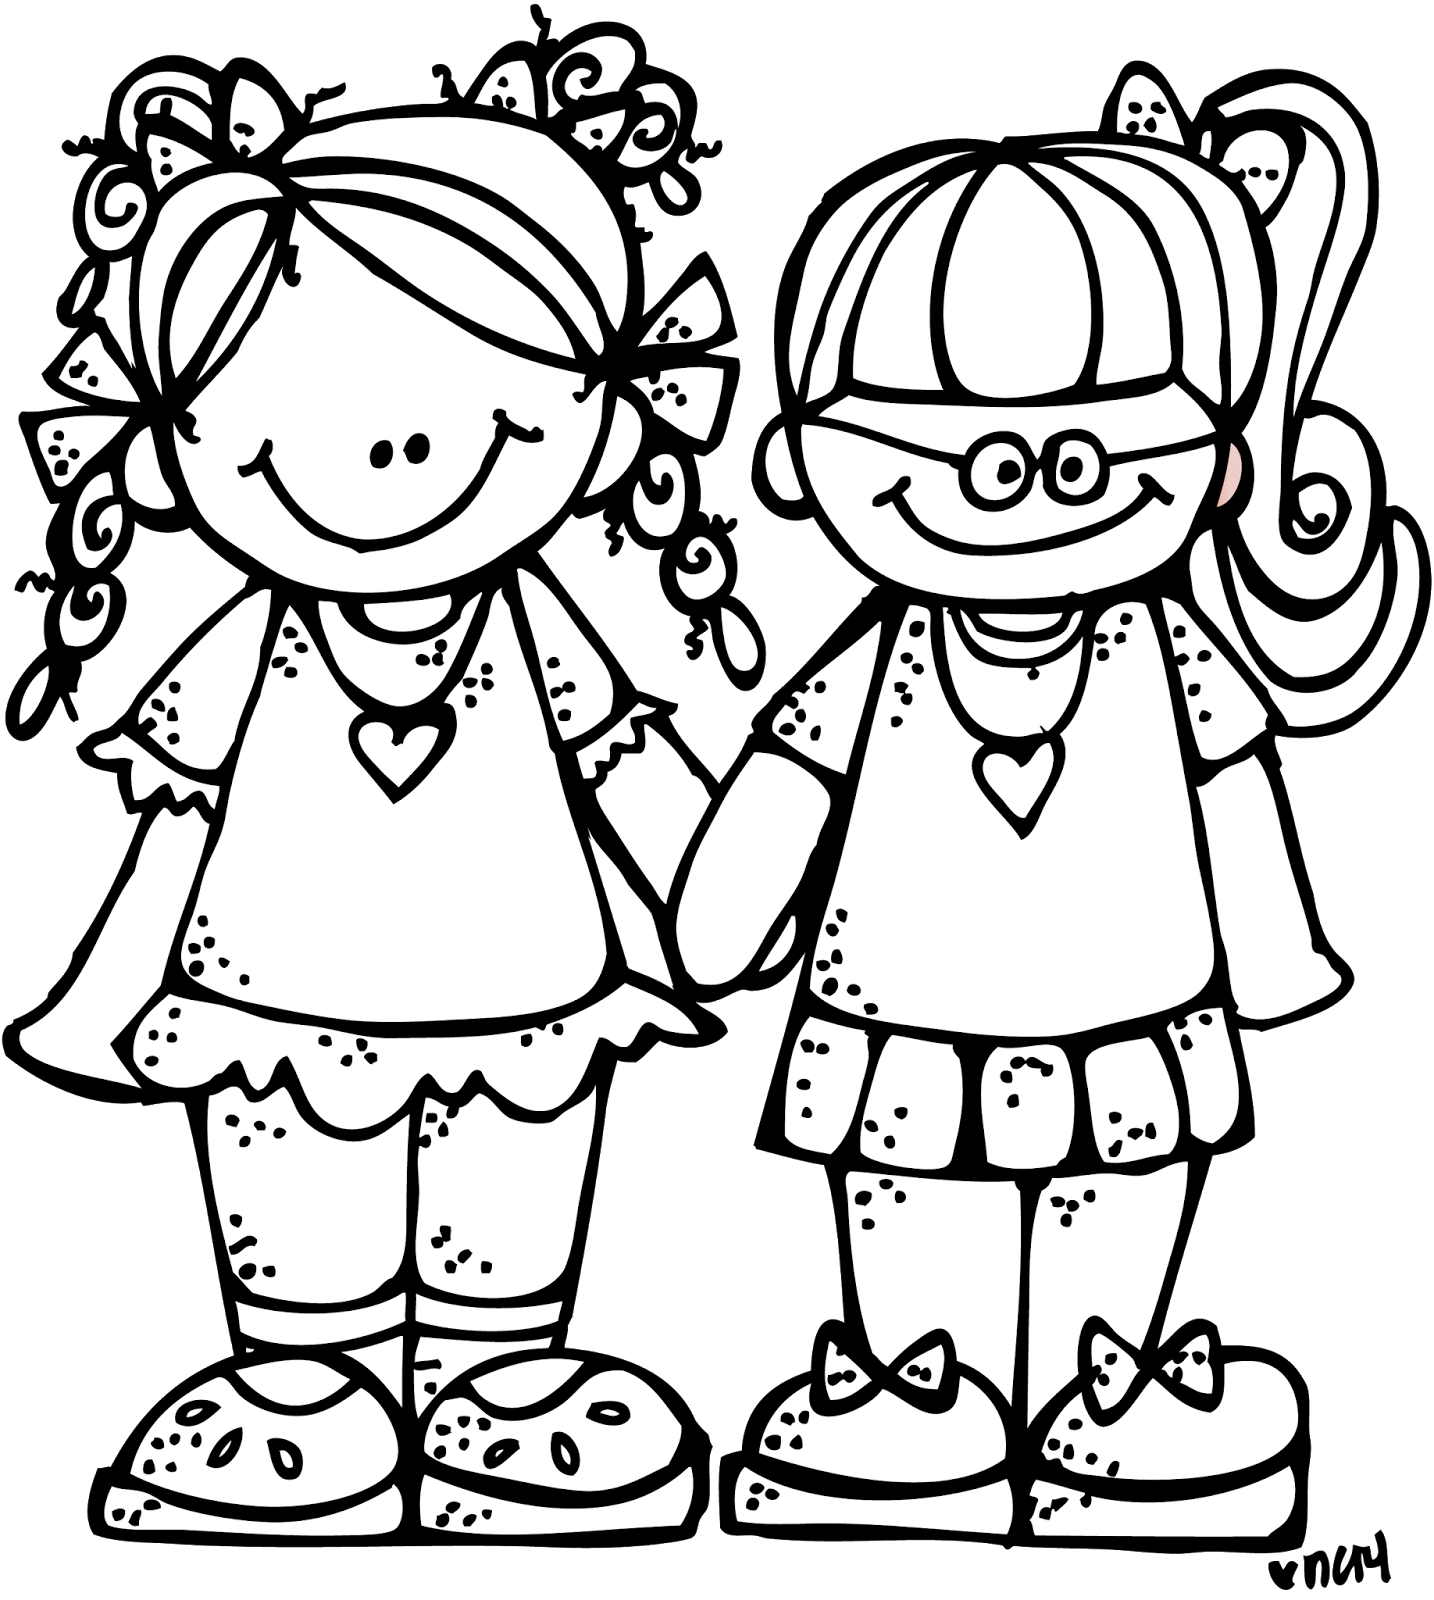 clip black and white library Good morning clipart black and white. Melonheadz illustrating freebie forever